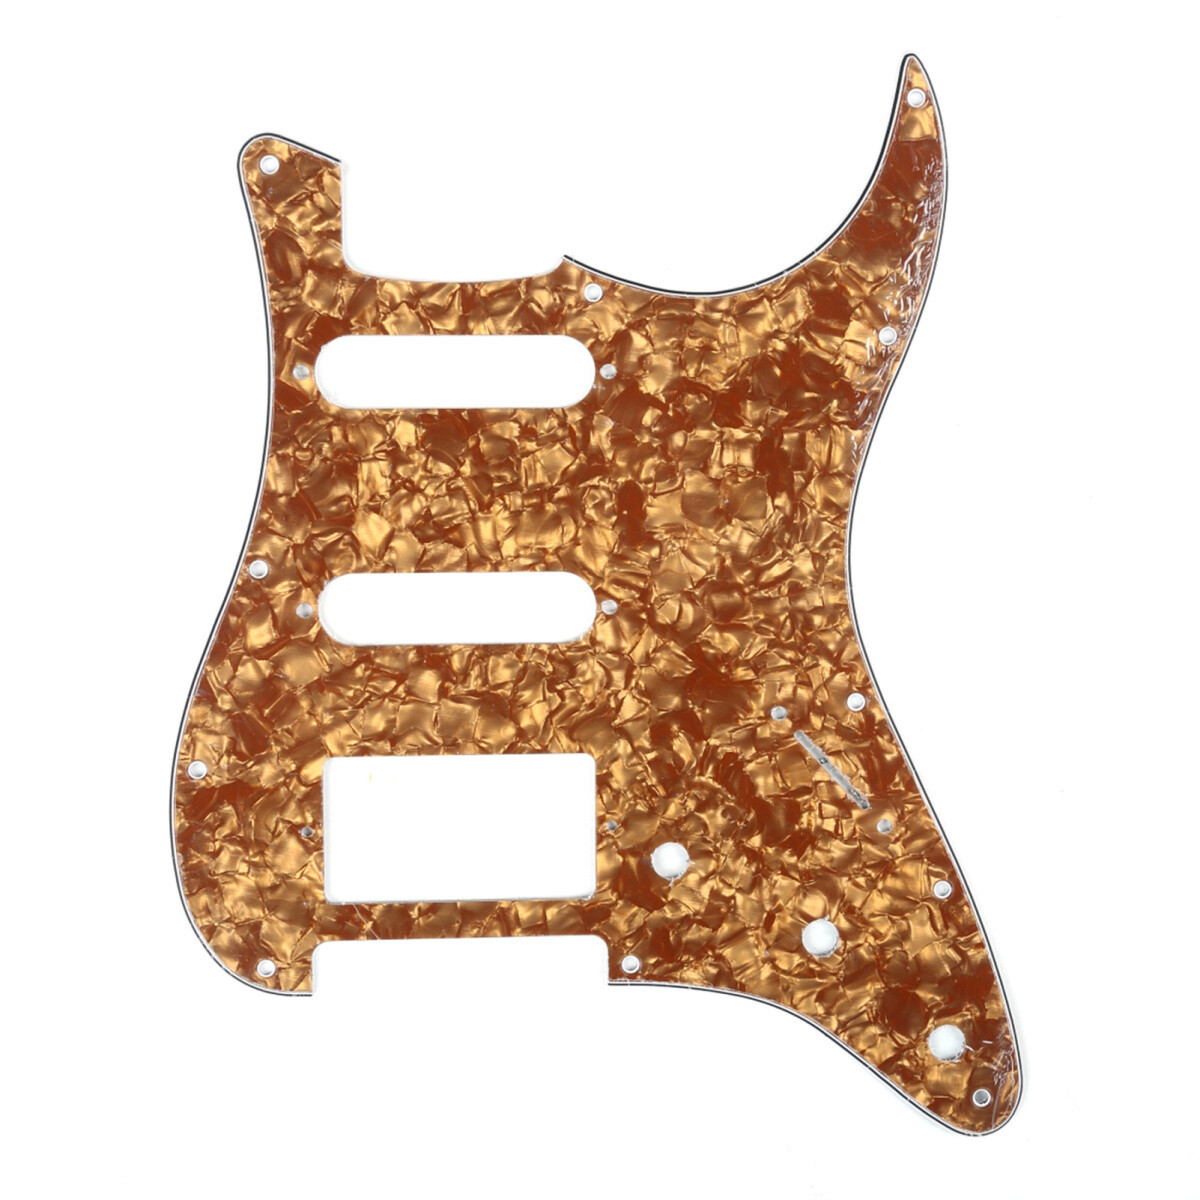 Brio 11-Hole Modern Style Strat HSS Pickguard for American Stratocaster Pearl Bronze